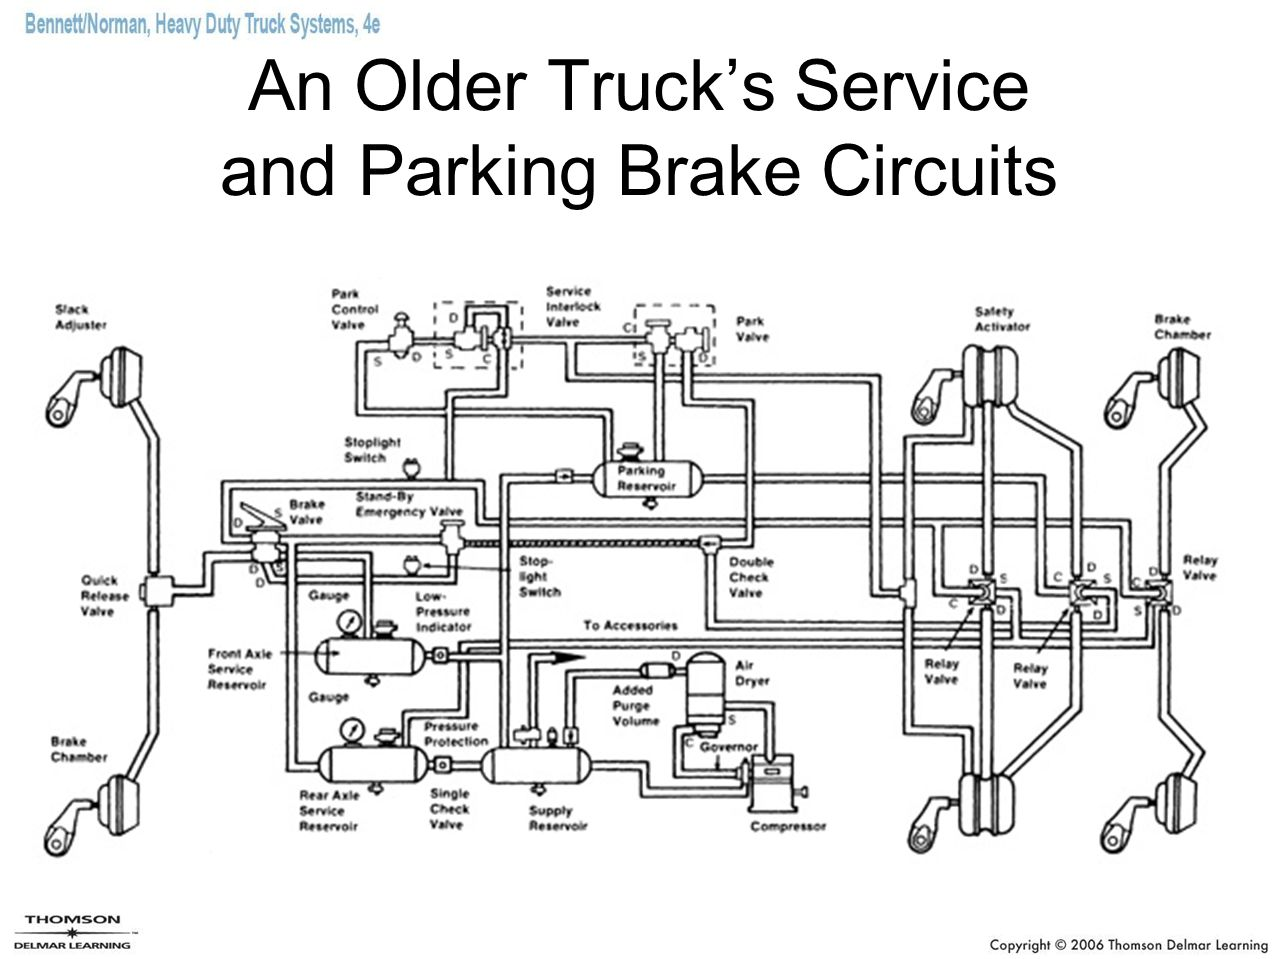 An Older Truck's Service and Parking Brake Circuits